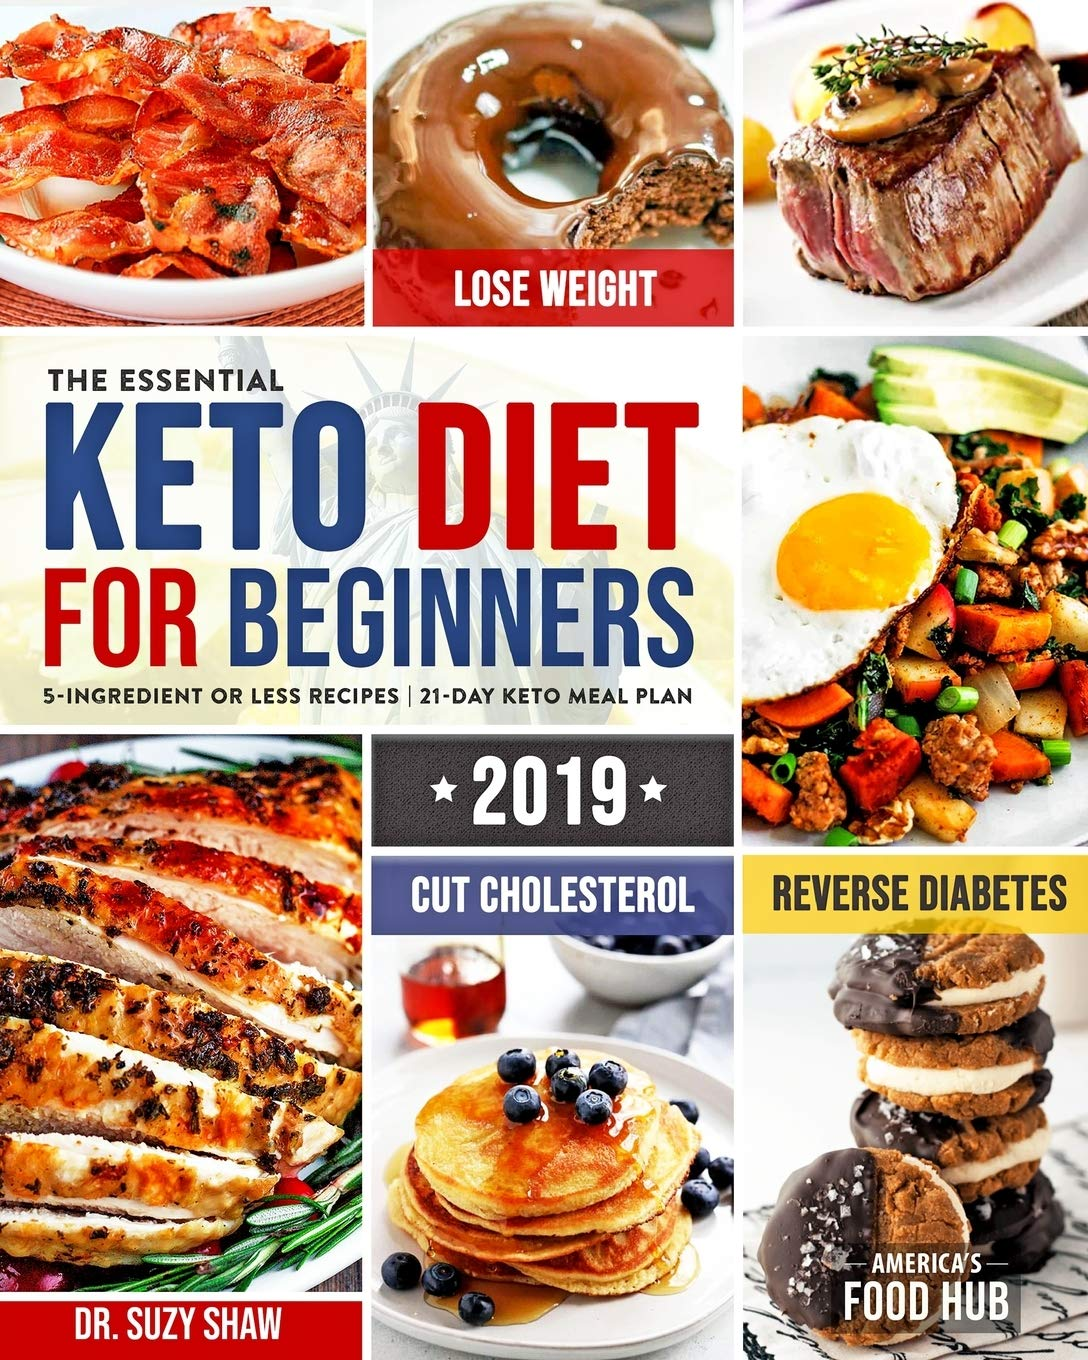 The Essential Keto Diet for Beginners #2019: 5-Ingredient Affordable, Quick & Easy Ketogenic Recipes | Lose Weight, Lower Cholesterol & Reverse Diabetes | 21-Day Keto Meal Plan pdf epub